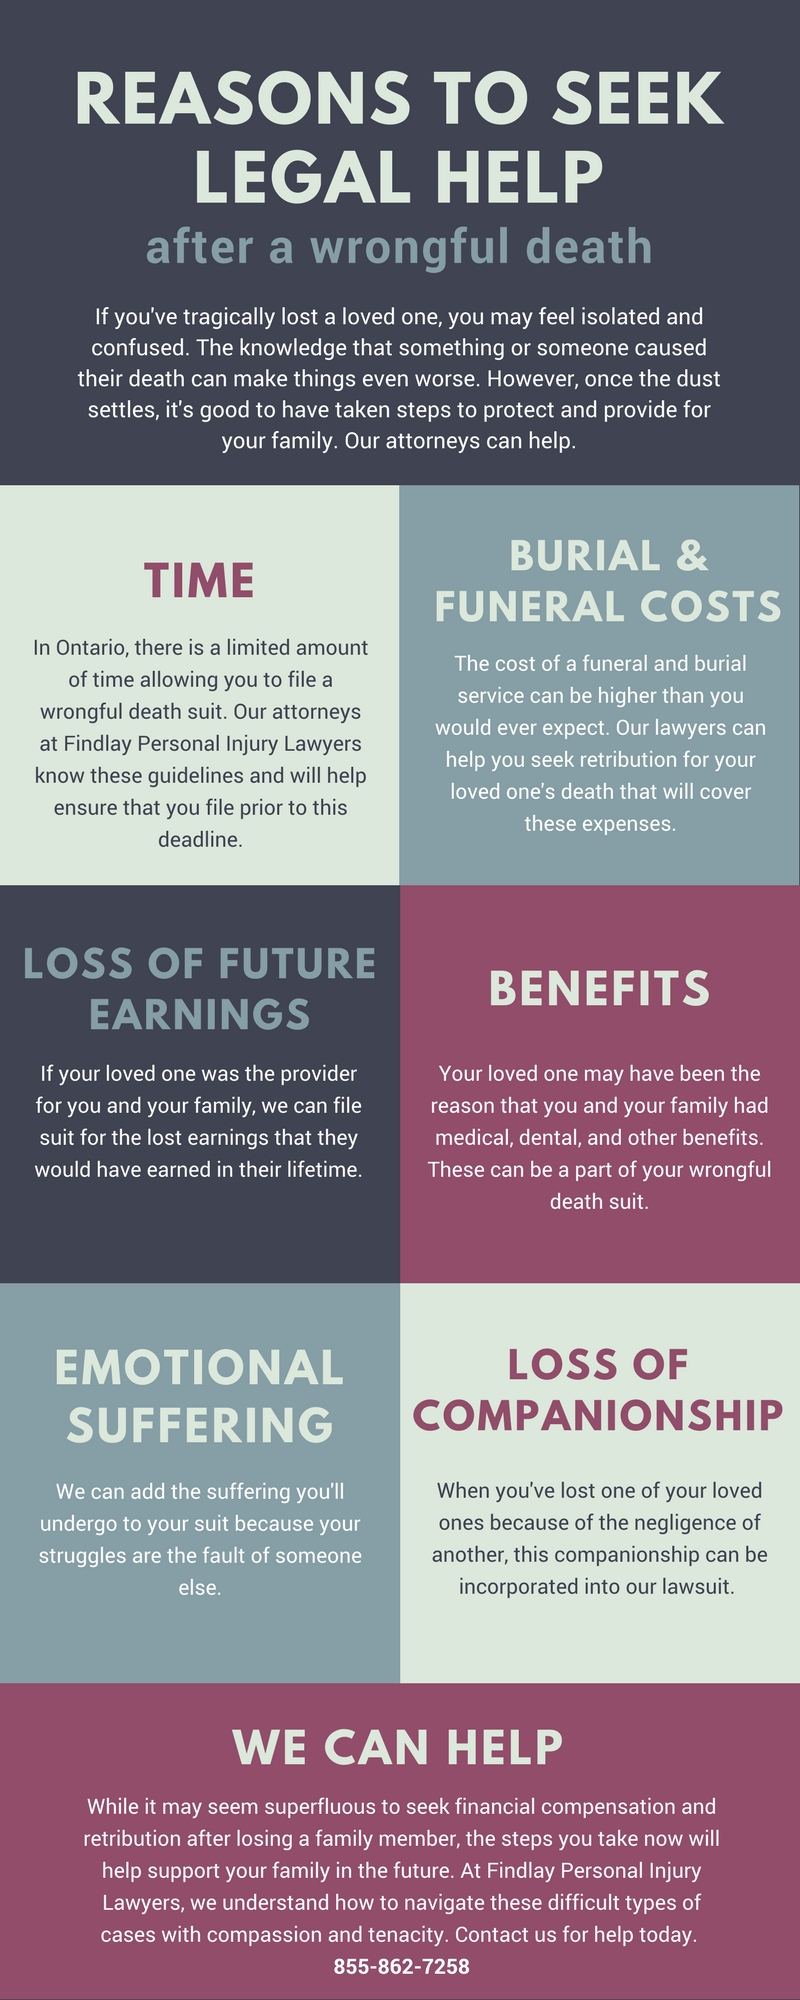 Wrongful Death Infographic | Ontario Fatal Accident Attorneys